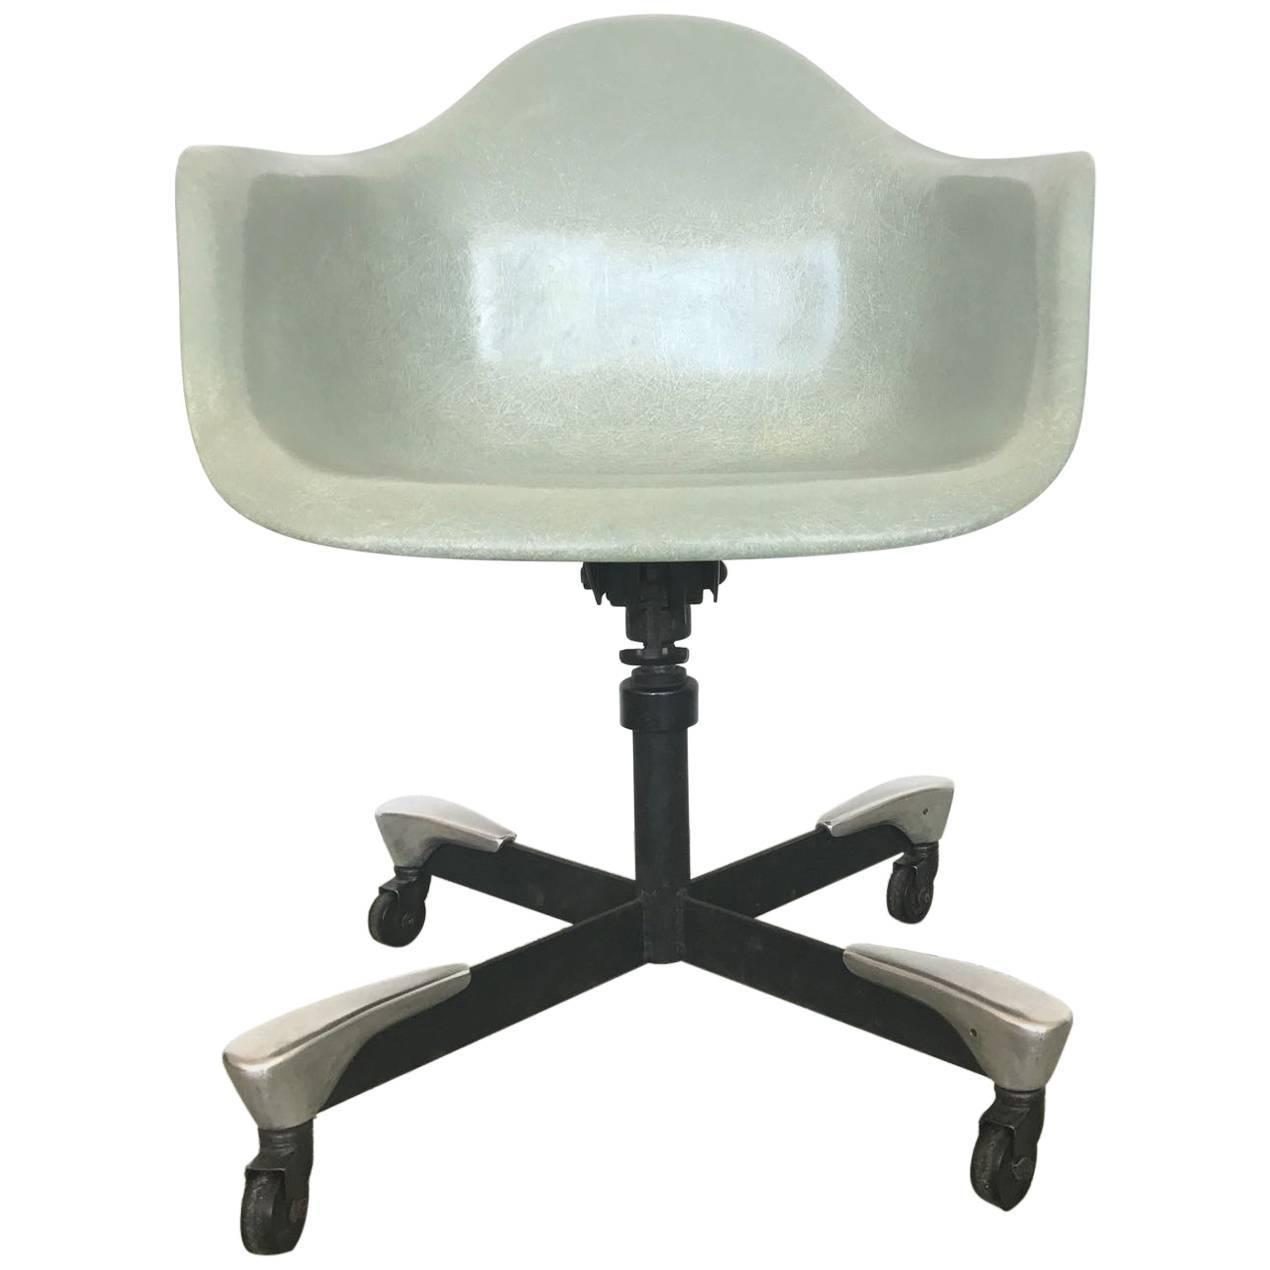 Grey Desk Chair 1953 Fiberglass Charles Eames Dat Desk Chair For Herman Miller